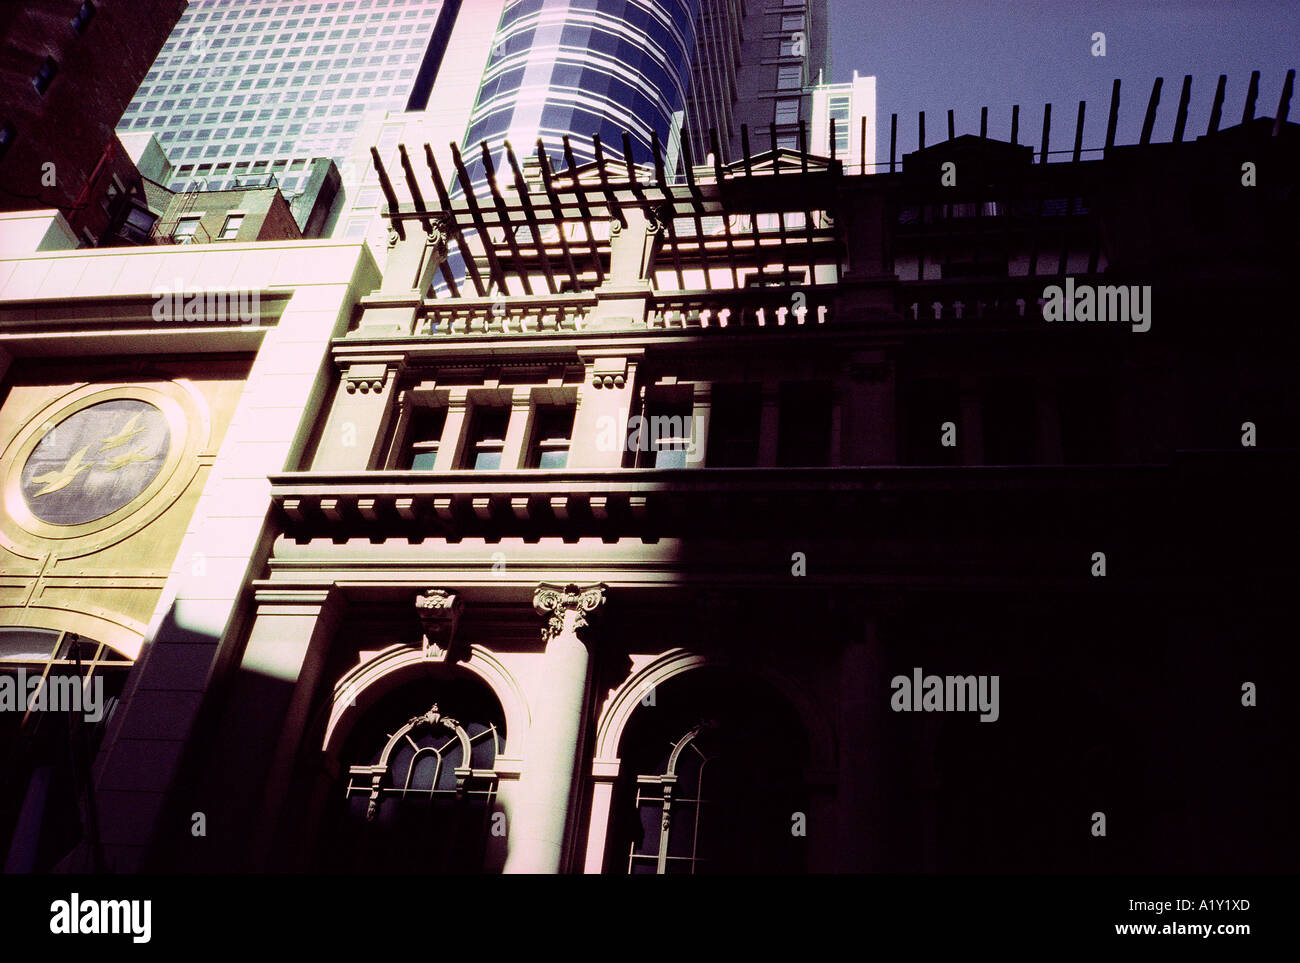 'City-snaps', New York City, US. Atmospheric 35mm snap image with considerable visible film-grain. - Stock Image